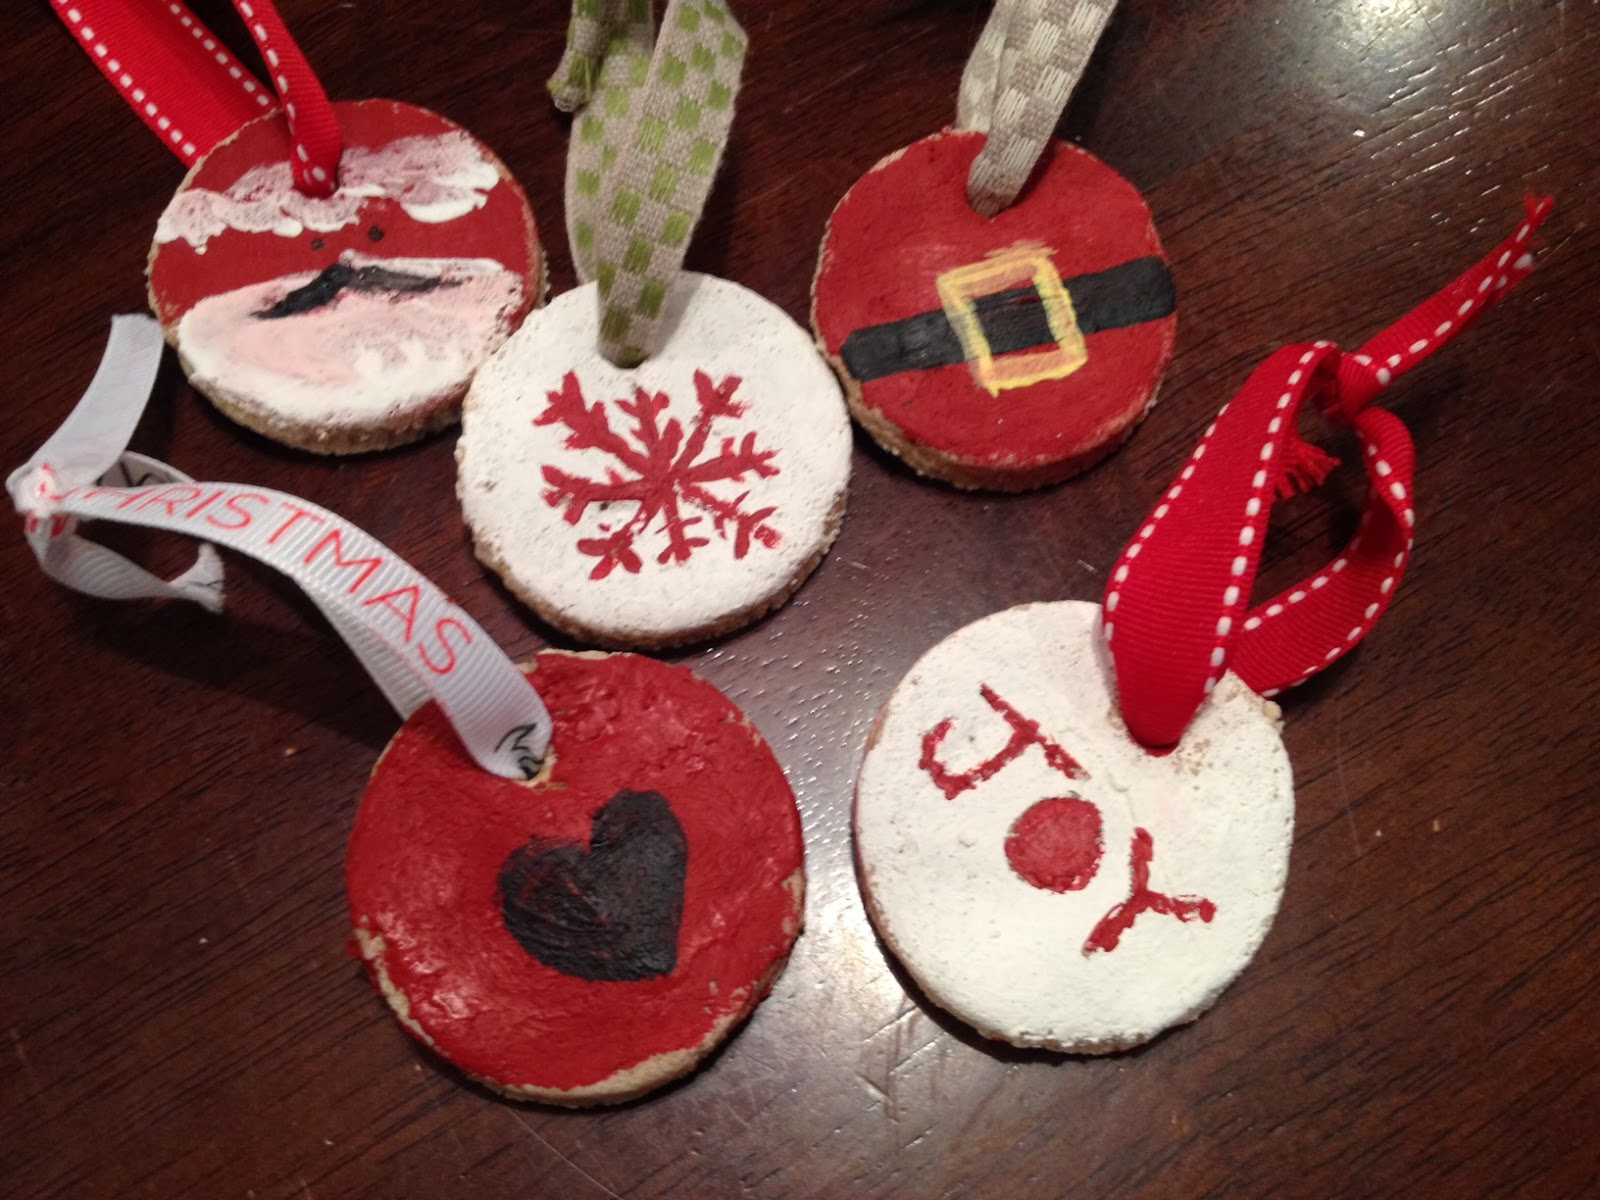 Salt dough ornaments and gift tags crafthubs two it yourself salt dough recipes for ornaments solutioingenieria Choice Image